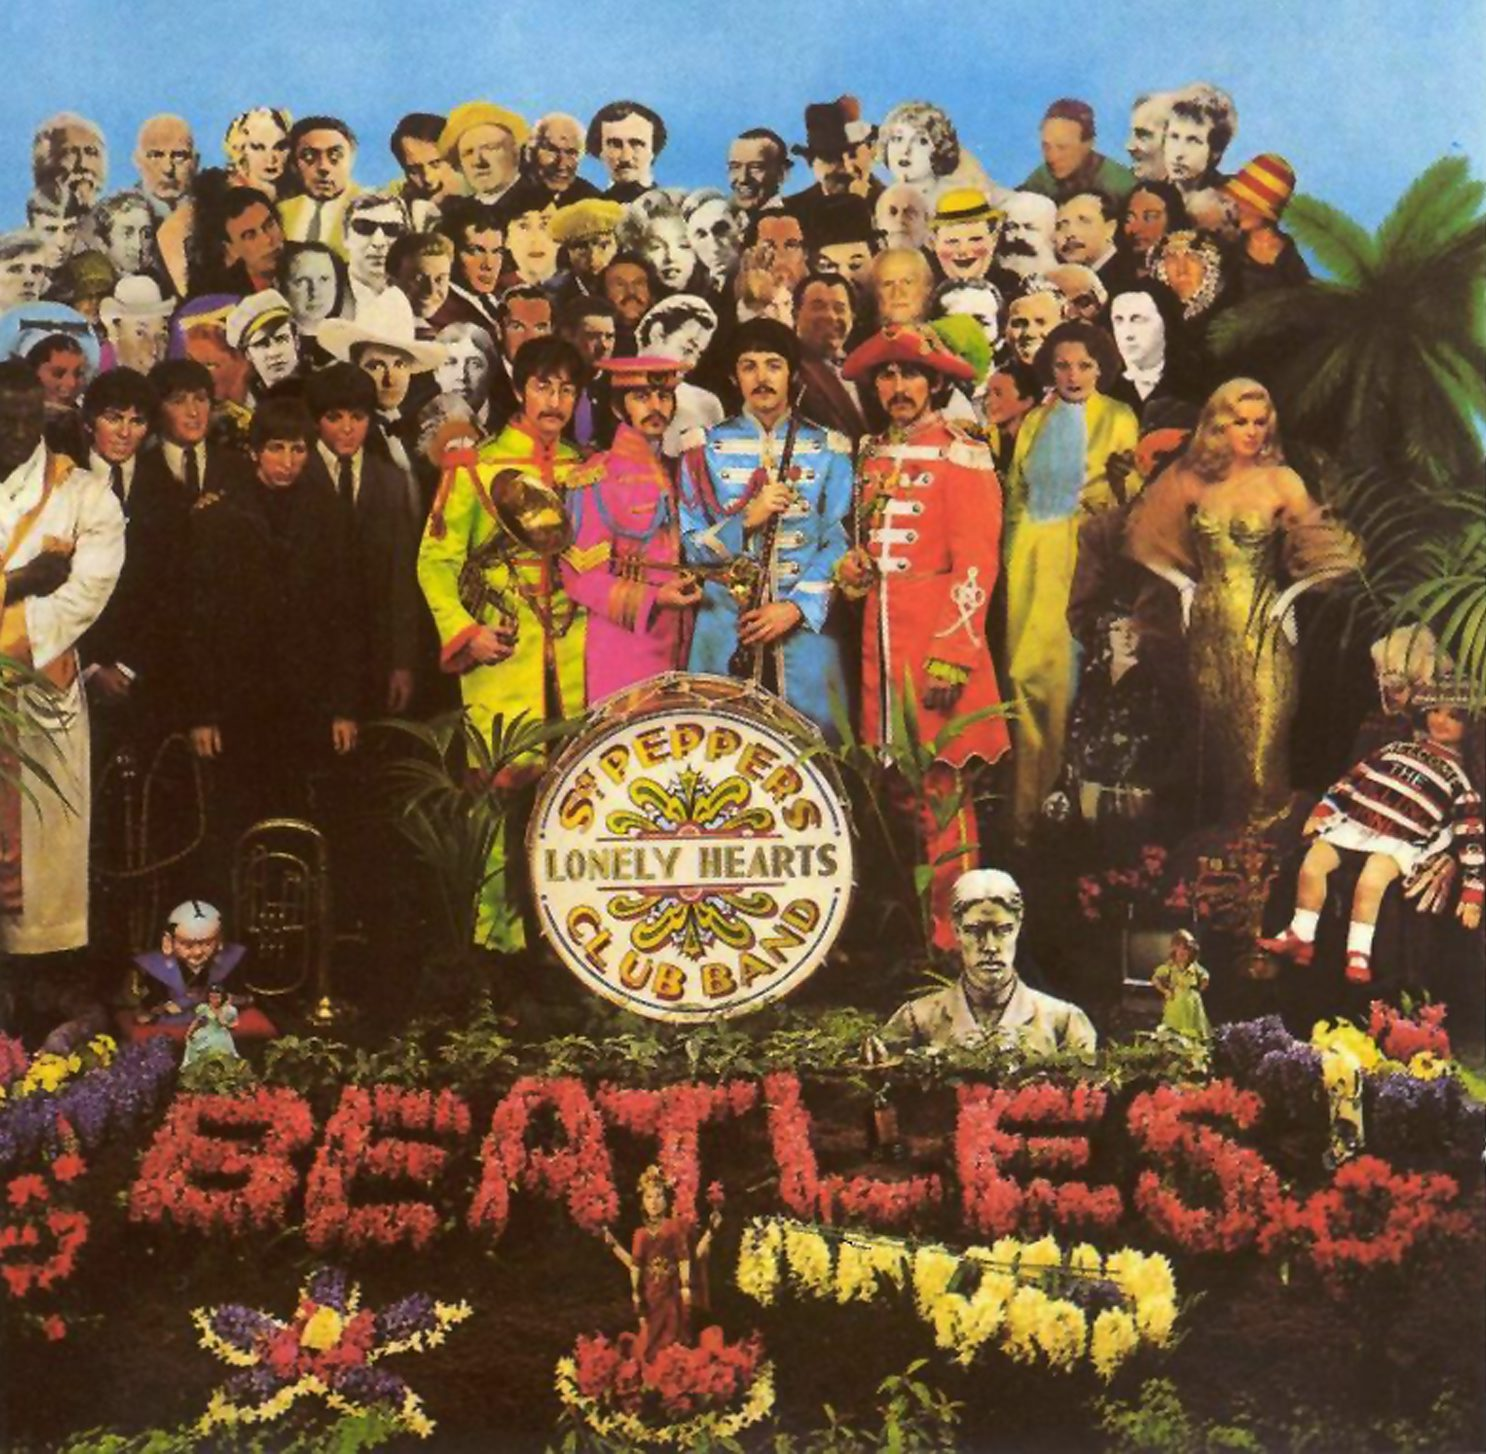 http://1.bp.blogspot.com/-ujgyV9qQ6yg/Tfo2w0AKMqI/AAAAAAAAADI/RaE5AGItNPE/s1600/beatles-Sgt.+Pepper%2527s+Lonely+Hearts+Club+Band.jpg